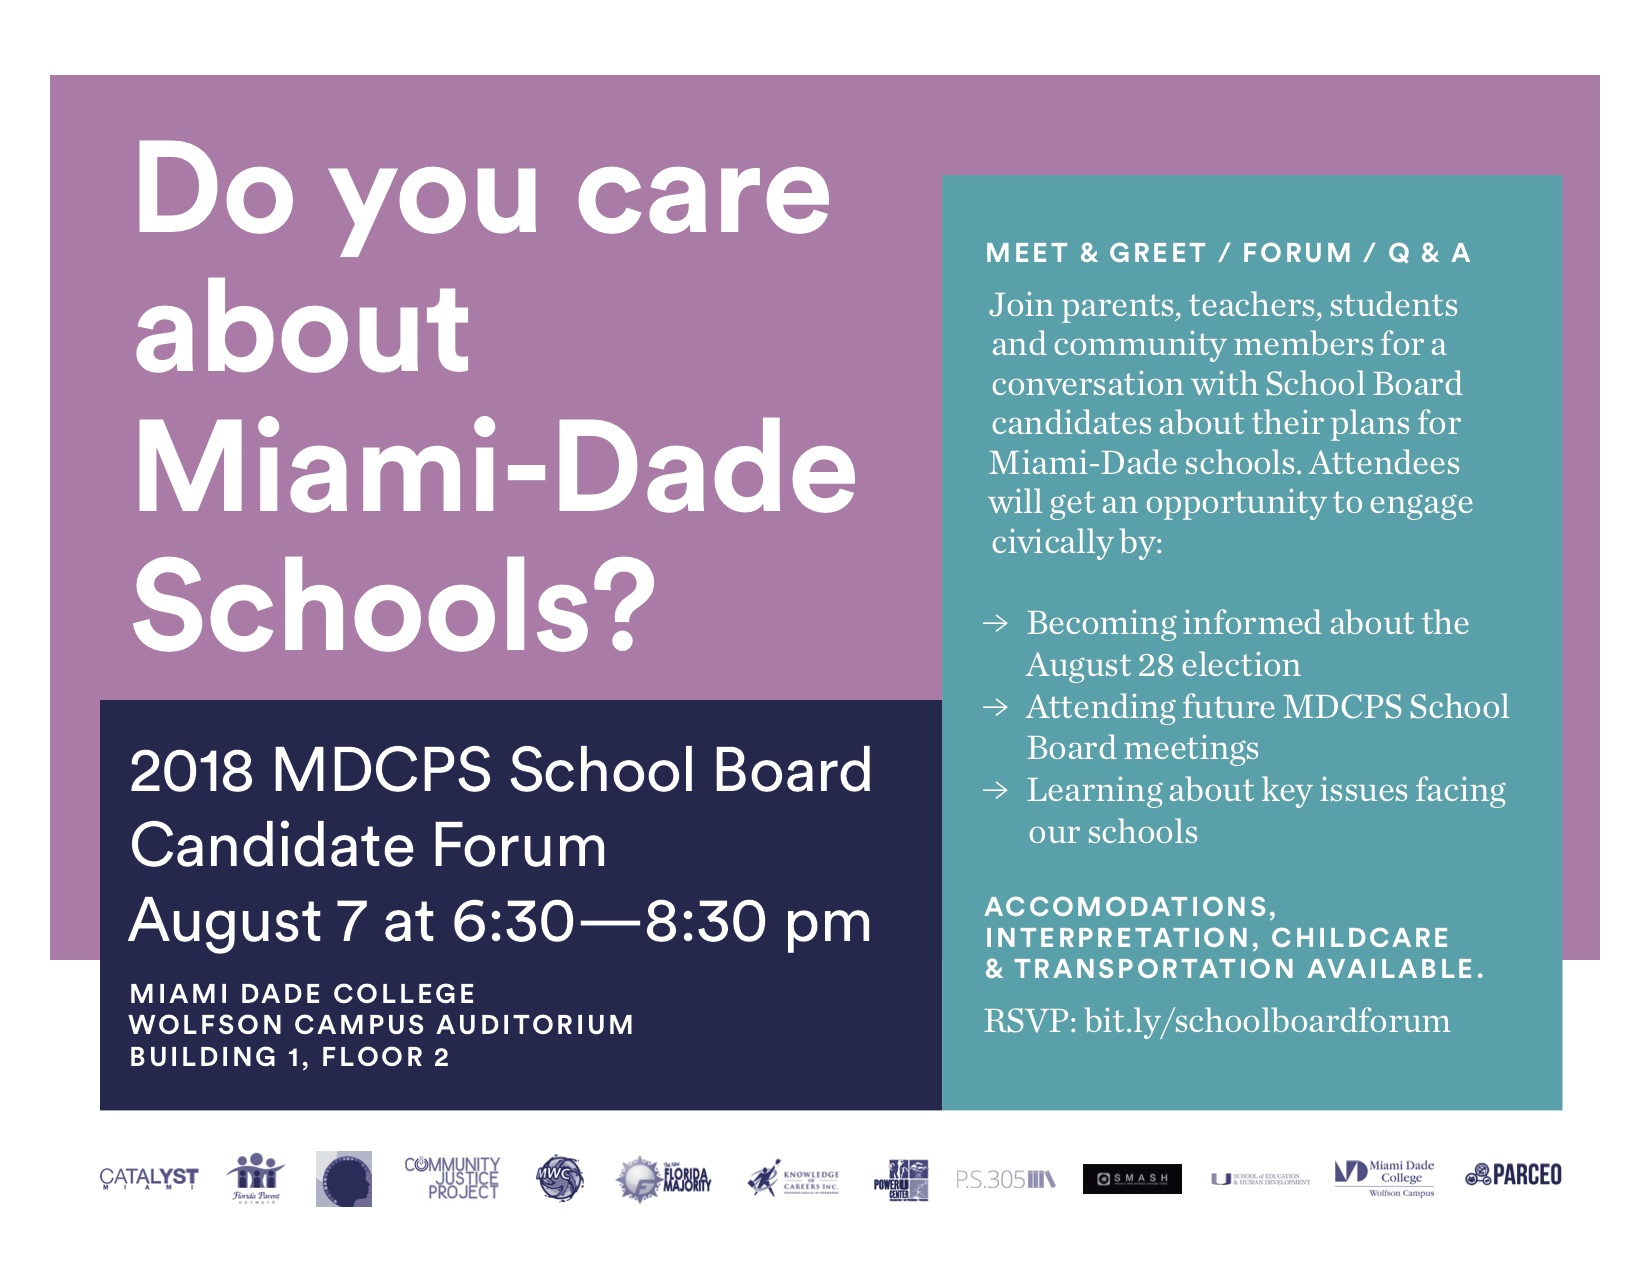 Join parents, teachers, students and community members for a conversation with School Board candidates about their plans for Miami-Dade schools. Attendees will get an opportunity to engage civically by:   - Becoming informed about the August 28 election - Attending future MDCPS School Board meetings - Learning about key issues facing our schools   Interpretation, childcare, accommodations and transportation available.